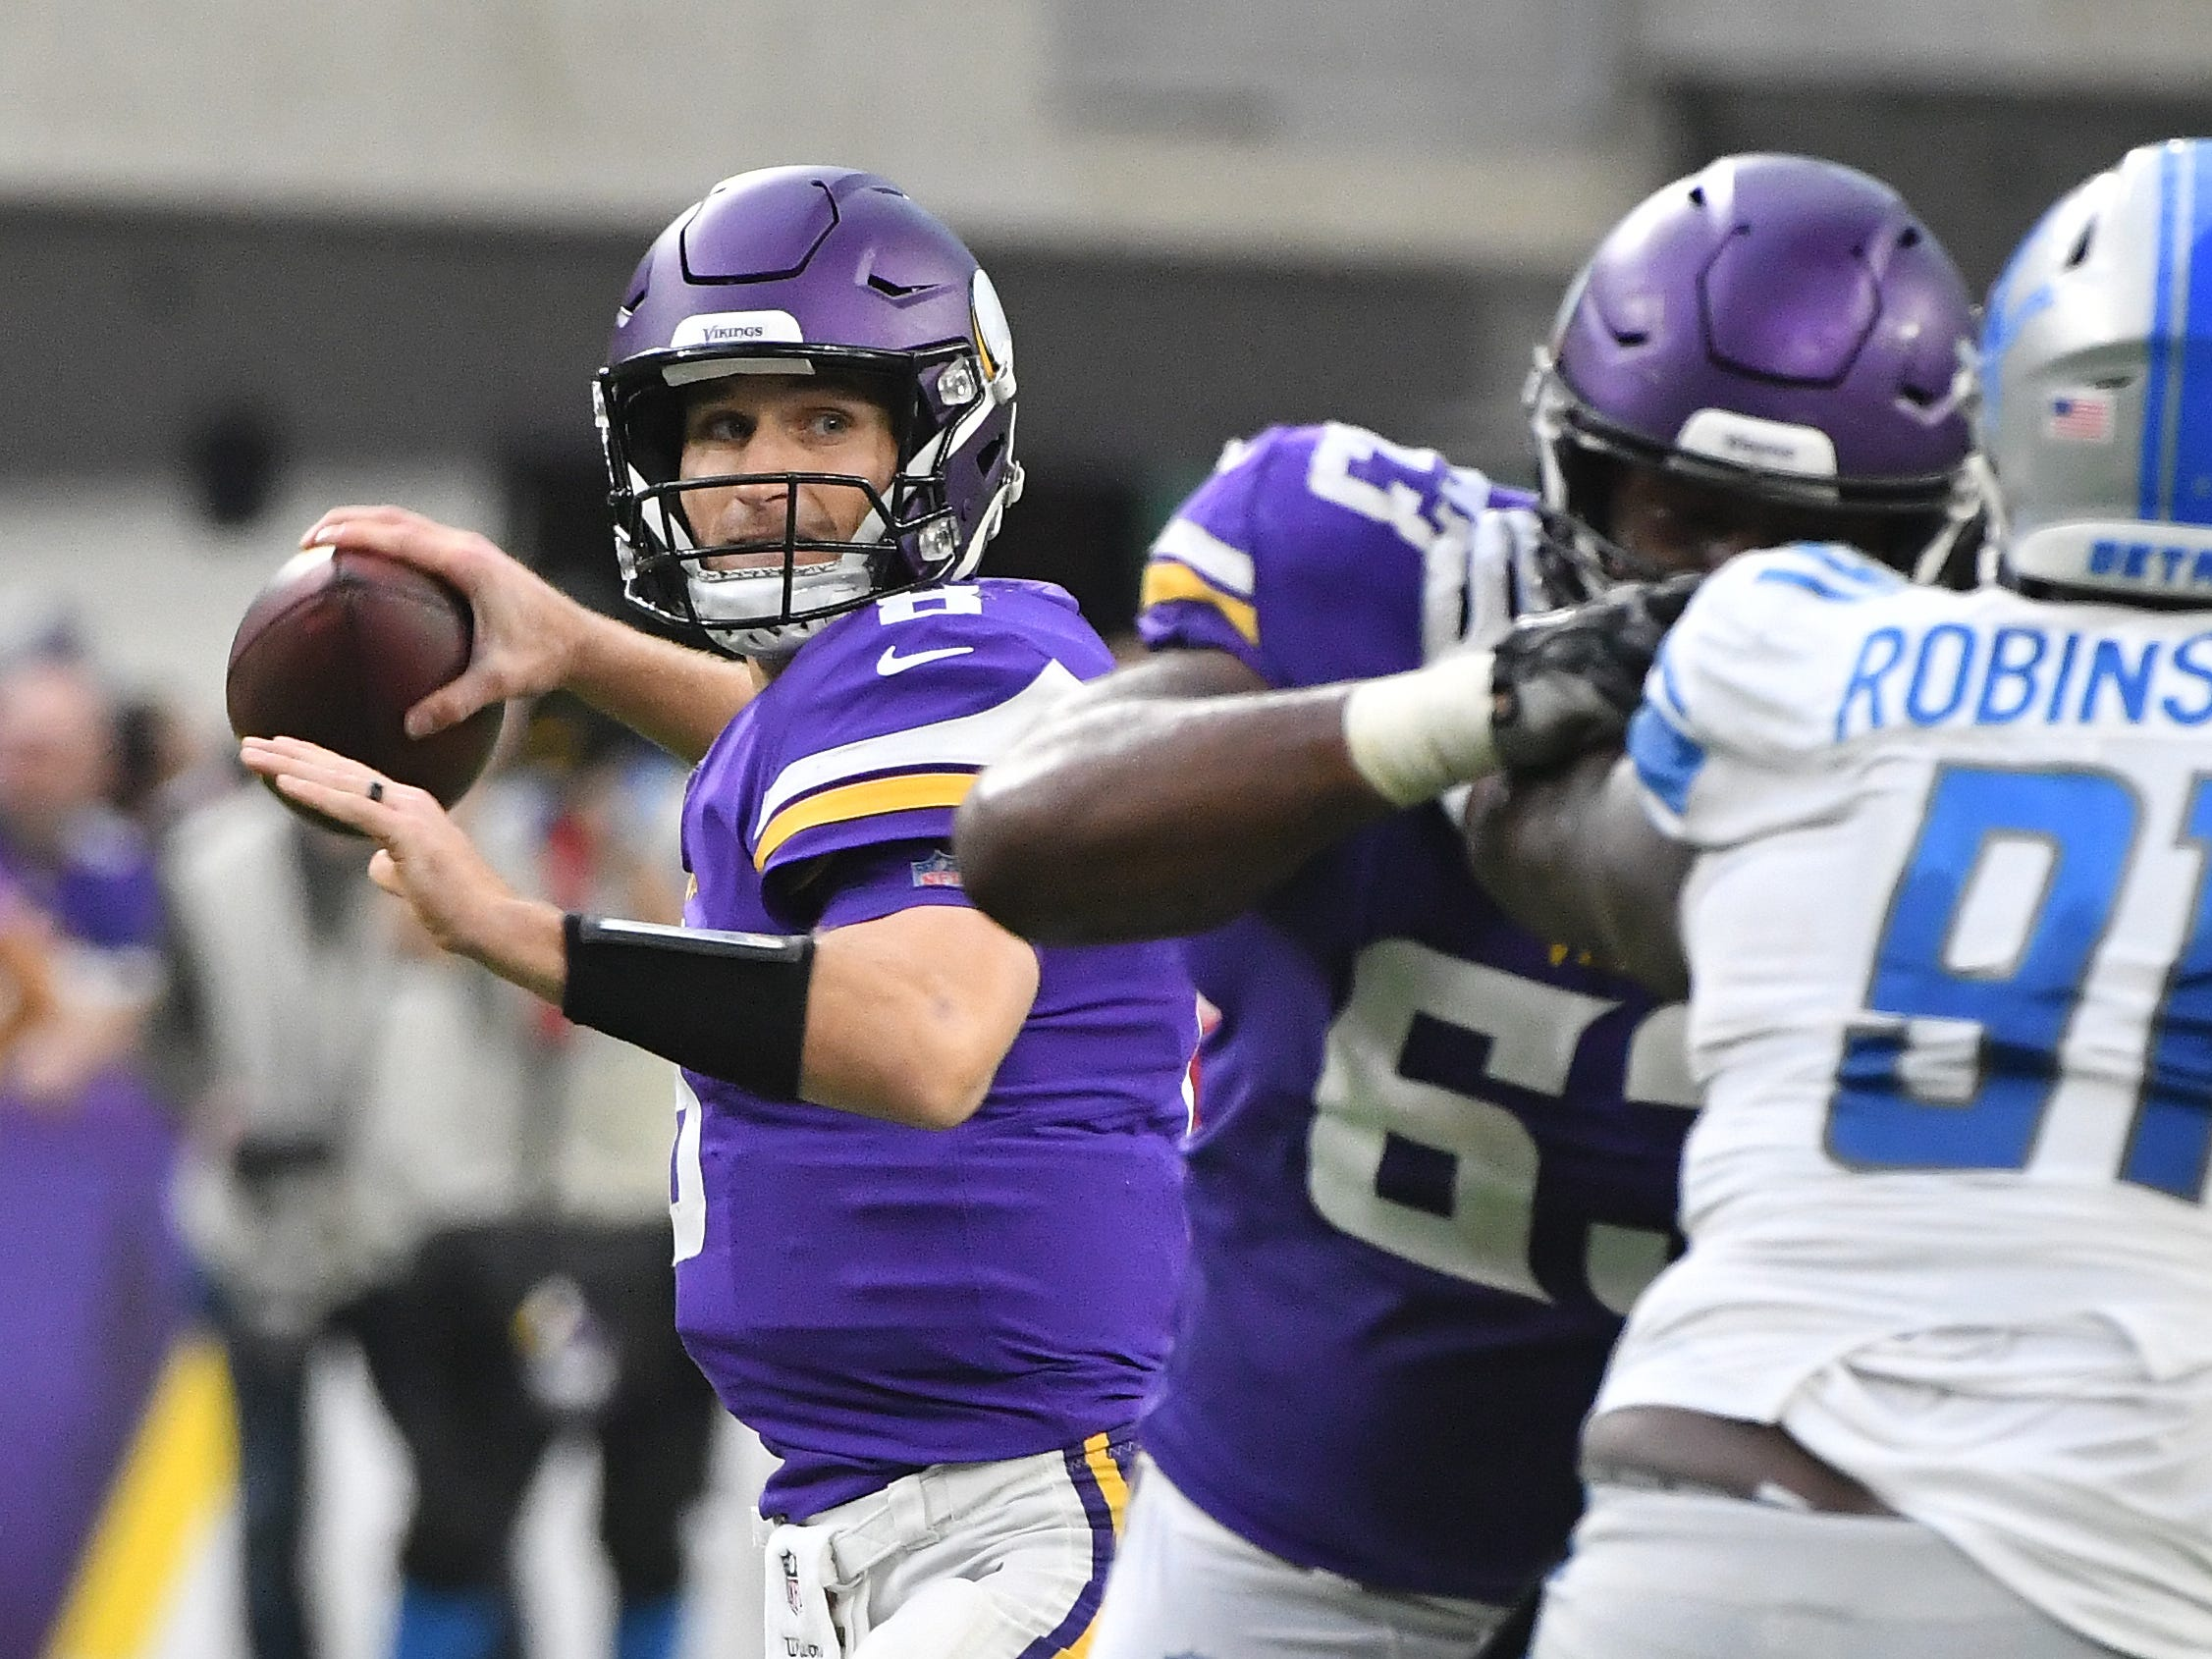 Vikings quarterback Kirk Cousins throws in the fourth quarter.